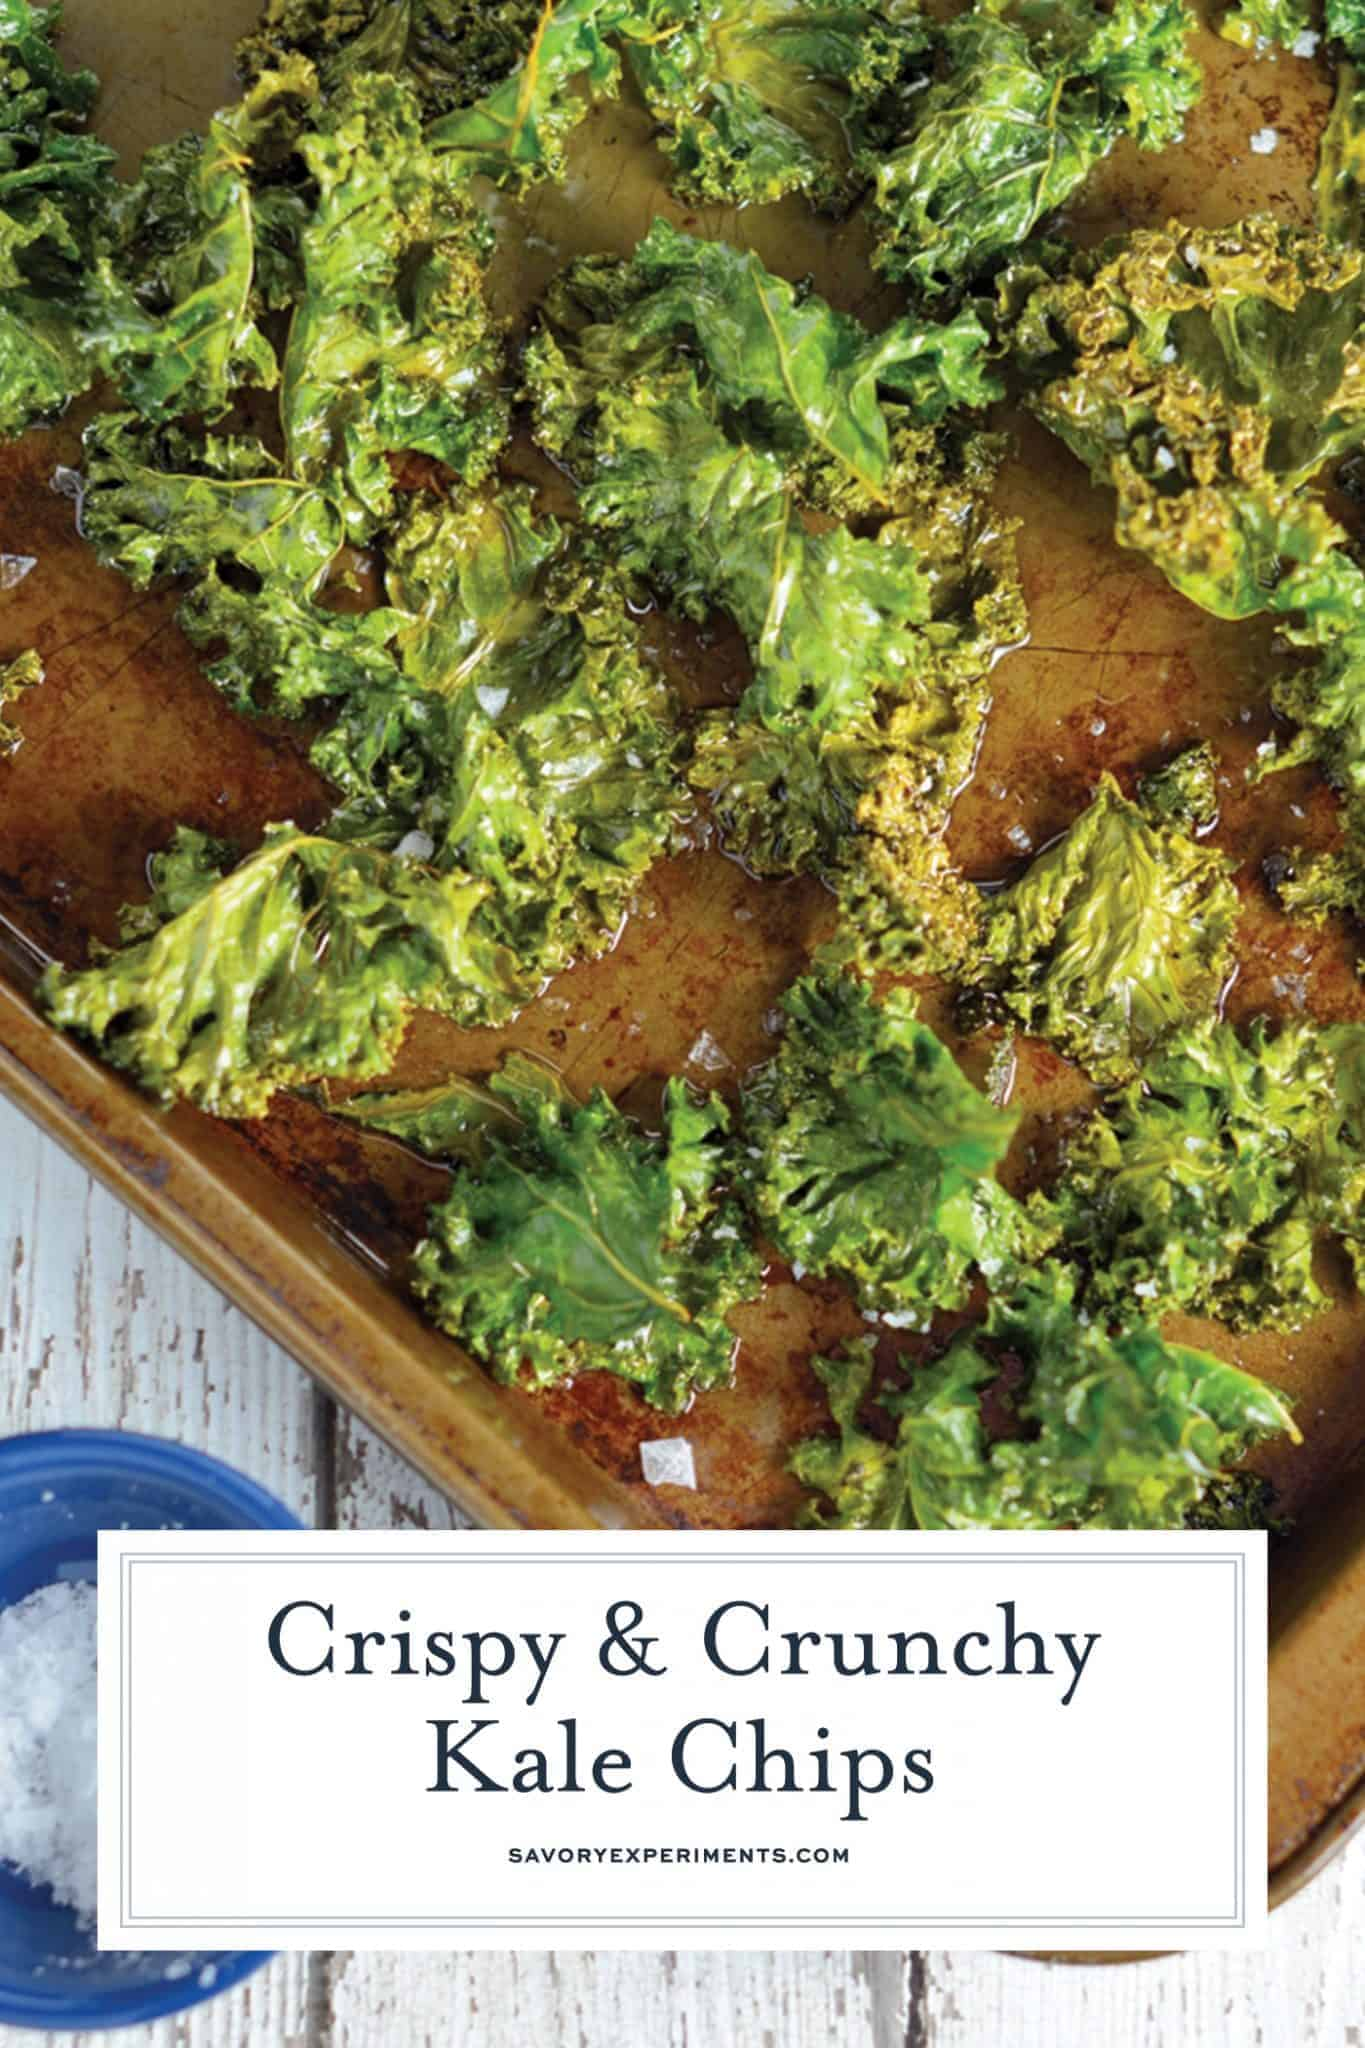 All you need for this Kale Chips recipe is kale leaves, olive oil, and sea salt! A tasty, easy, and healthy alternative to potato chips! #kalechipsrecipe #bakedkalechips www.savoryexperiments.com